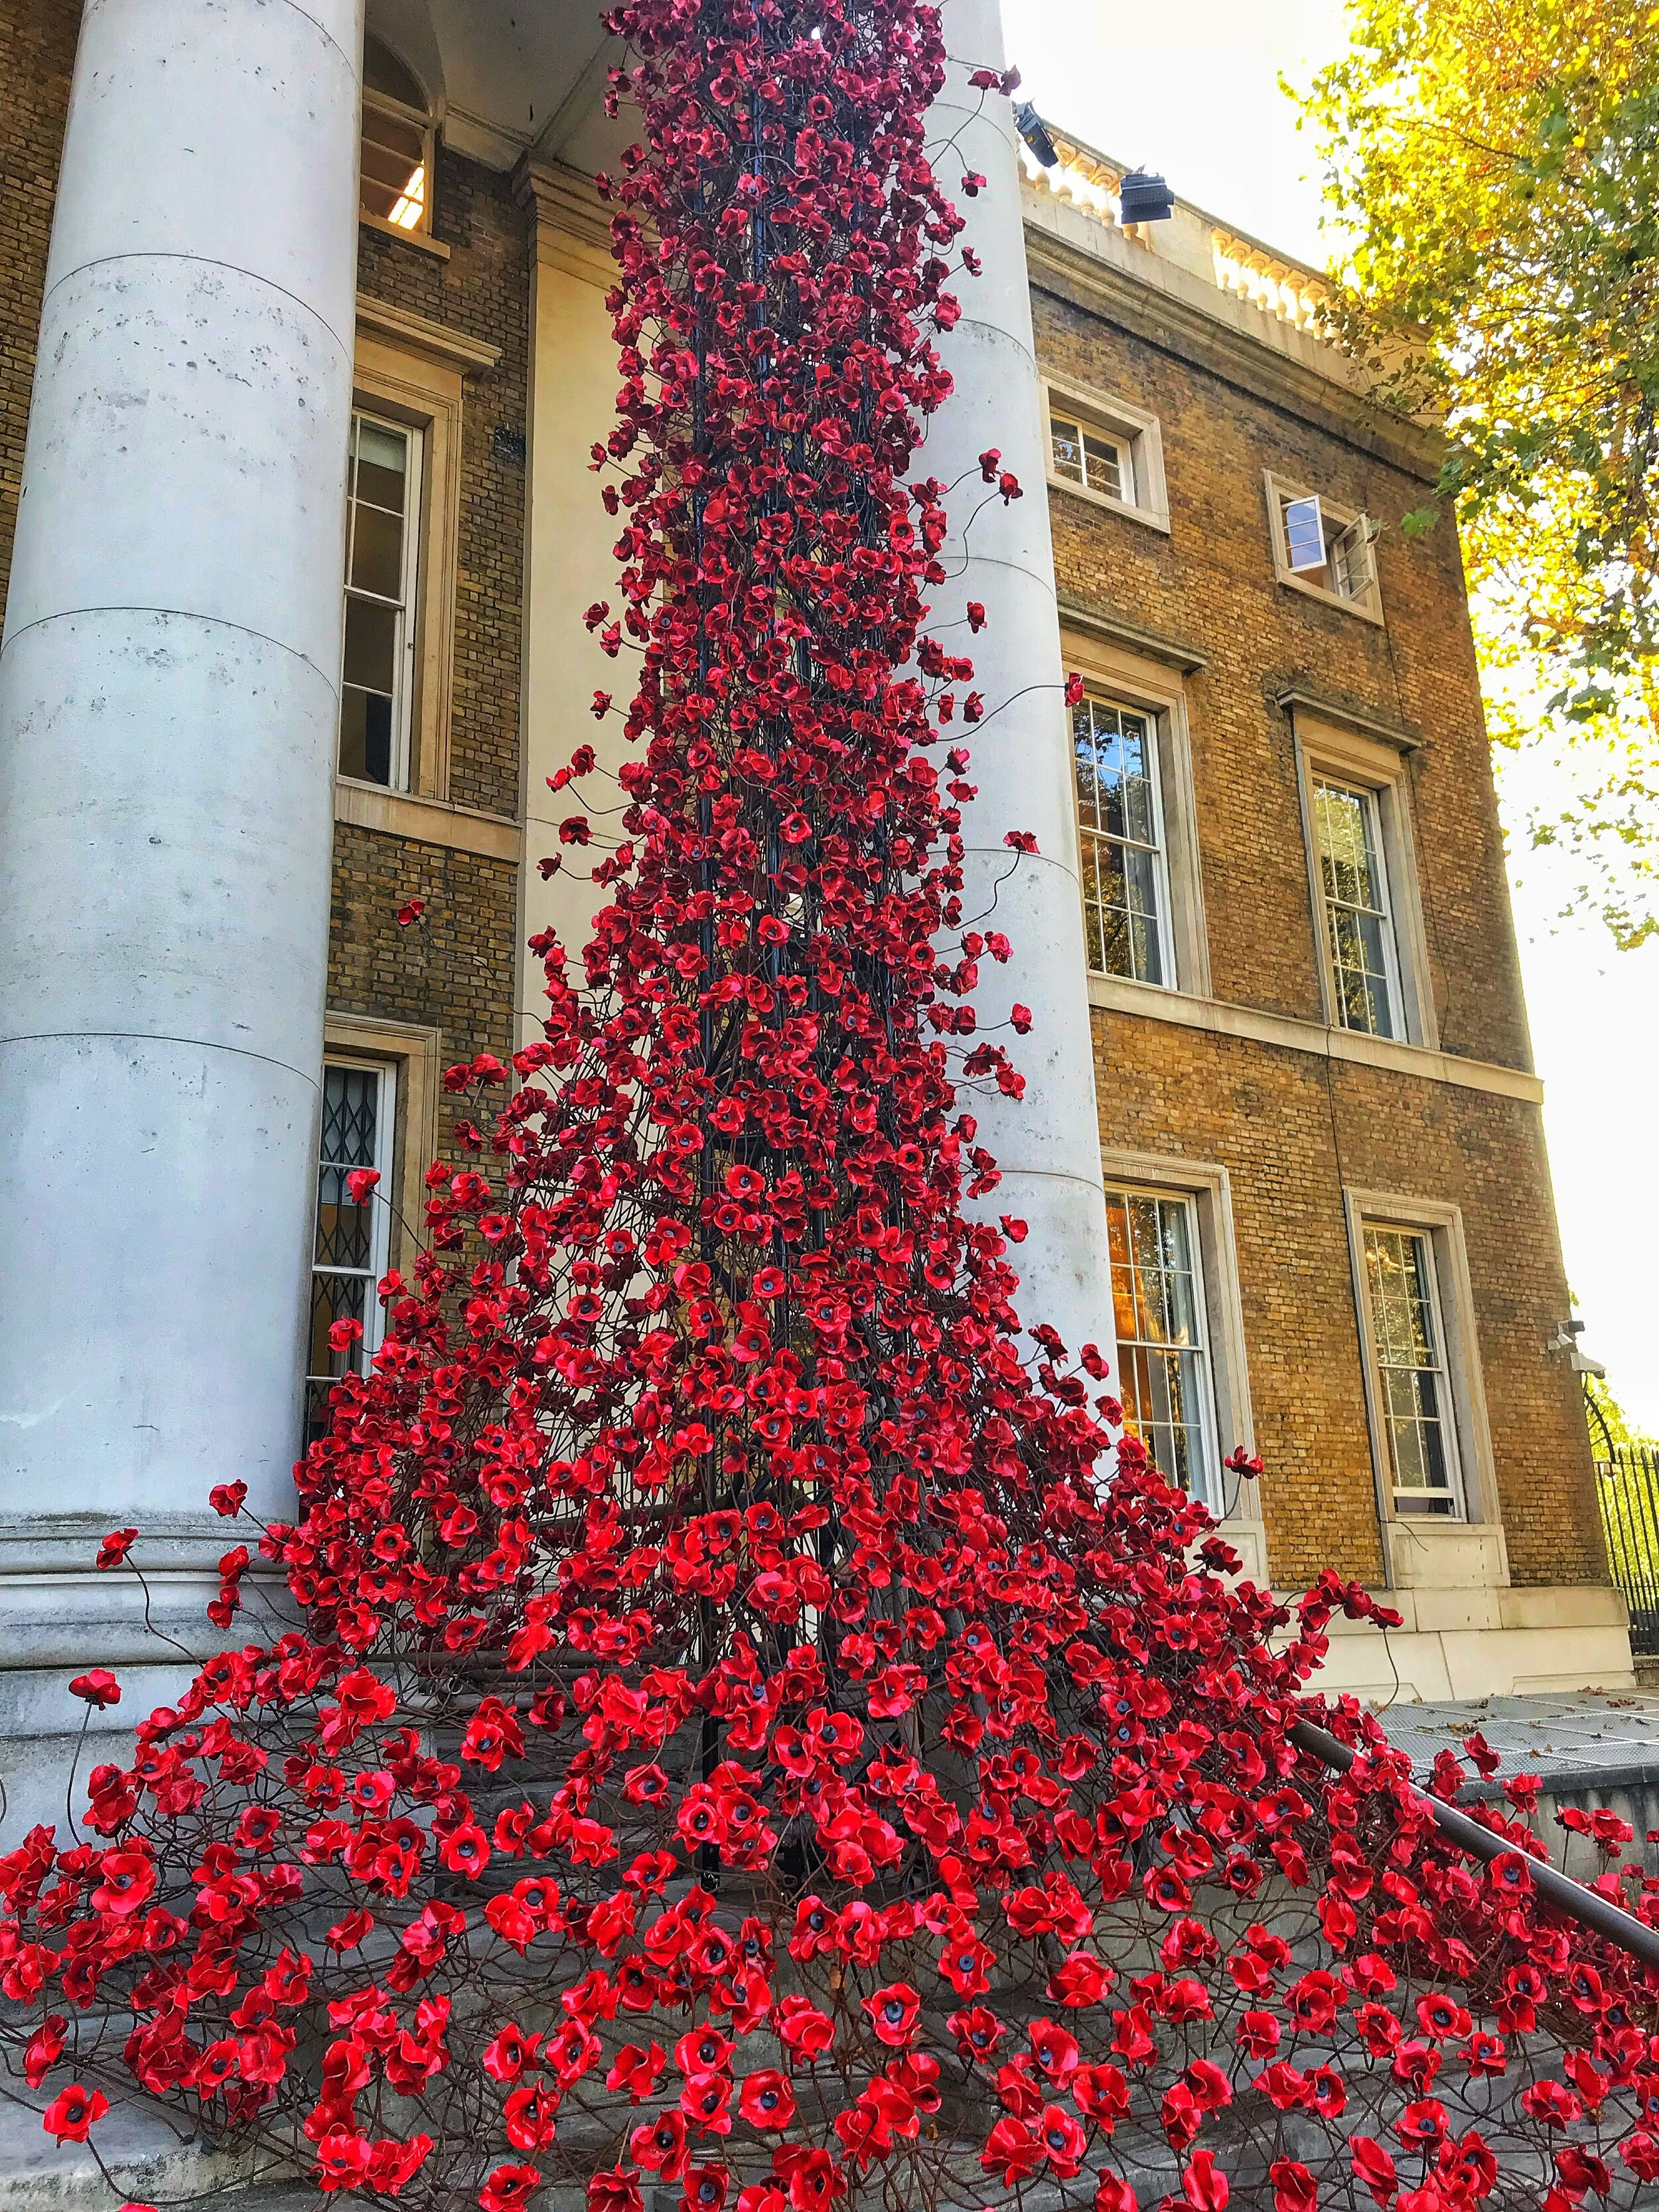 Imperial War Museum, Remembrance Day installation.